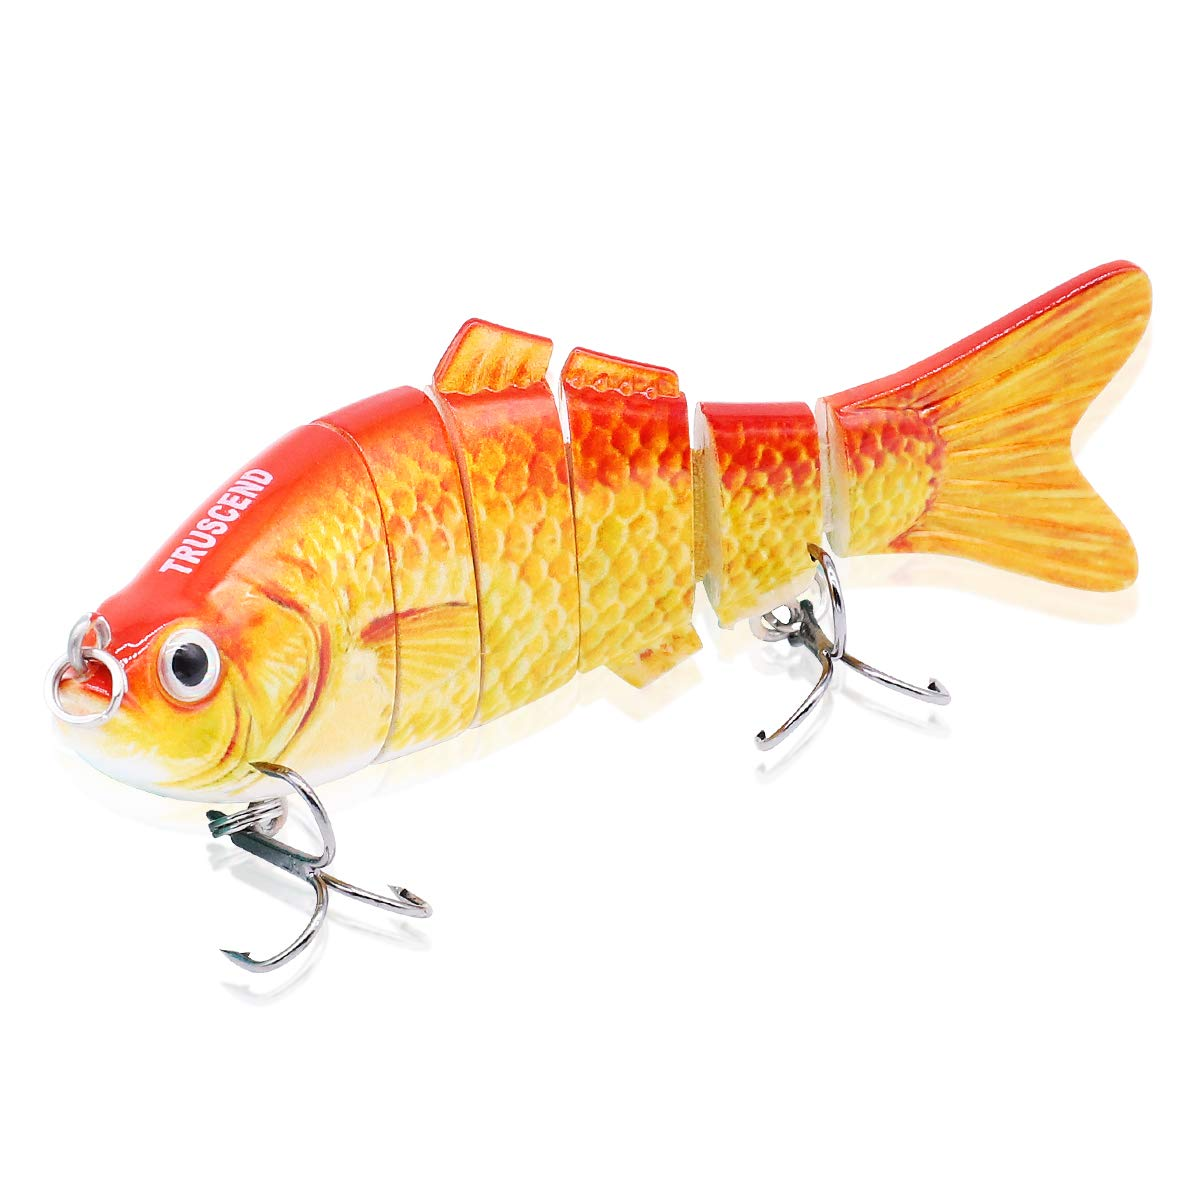 TRUSCEND Fishing Lures Swimbait Bass, 10cm 3.93'' Fishing Lures Crankbait Jointed Trout Swimbait Mustad Hooks (Gold)